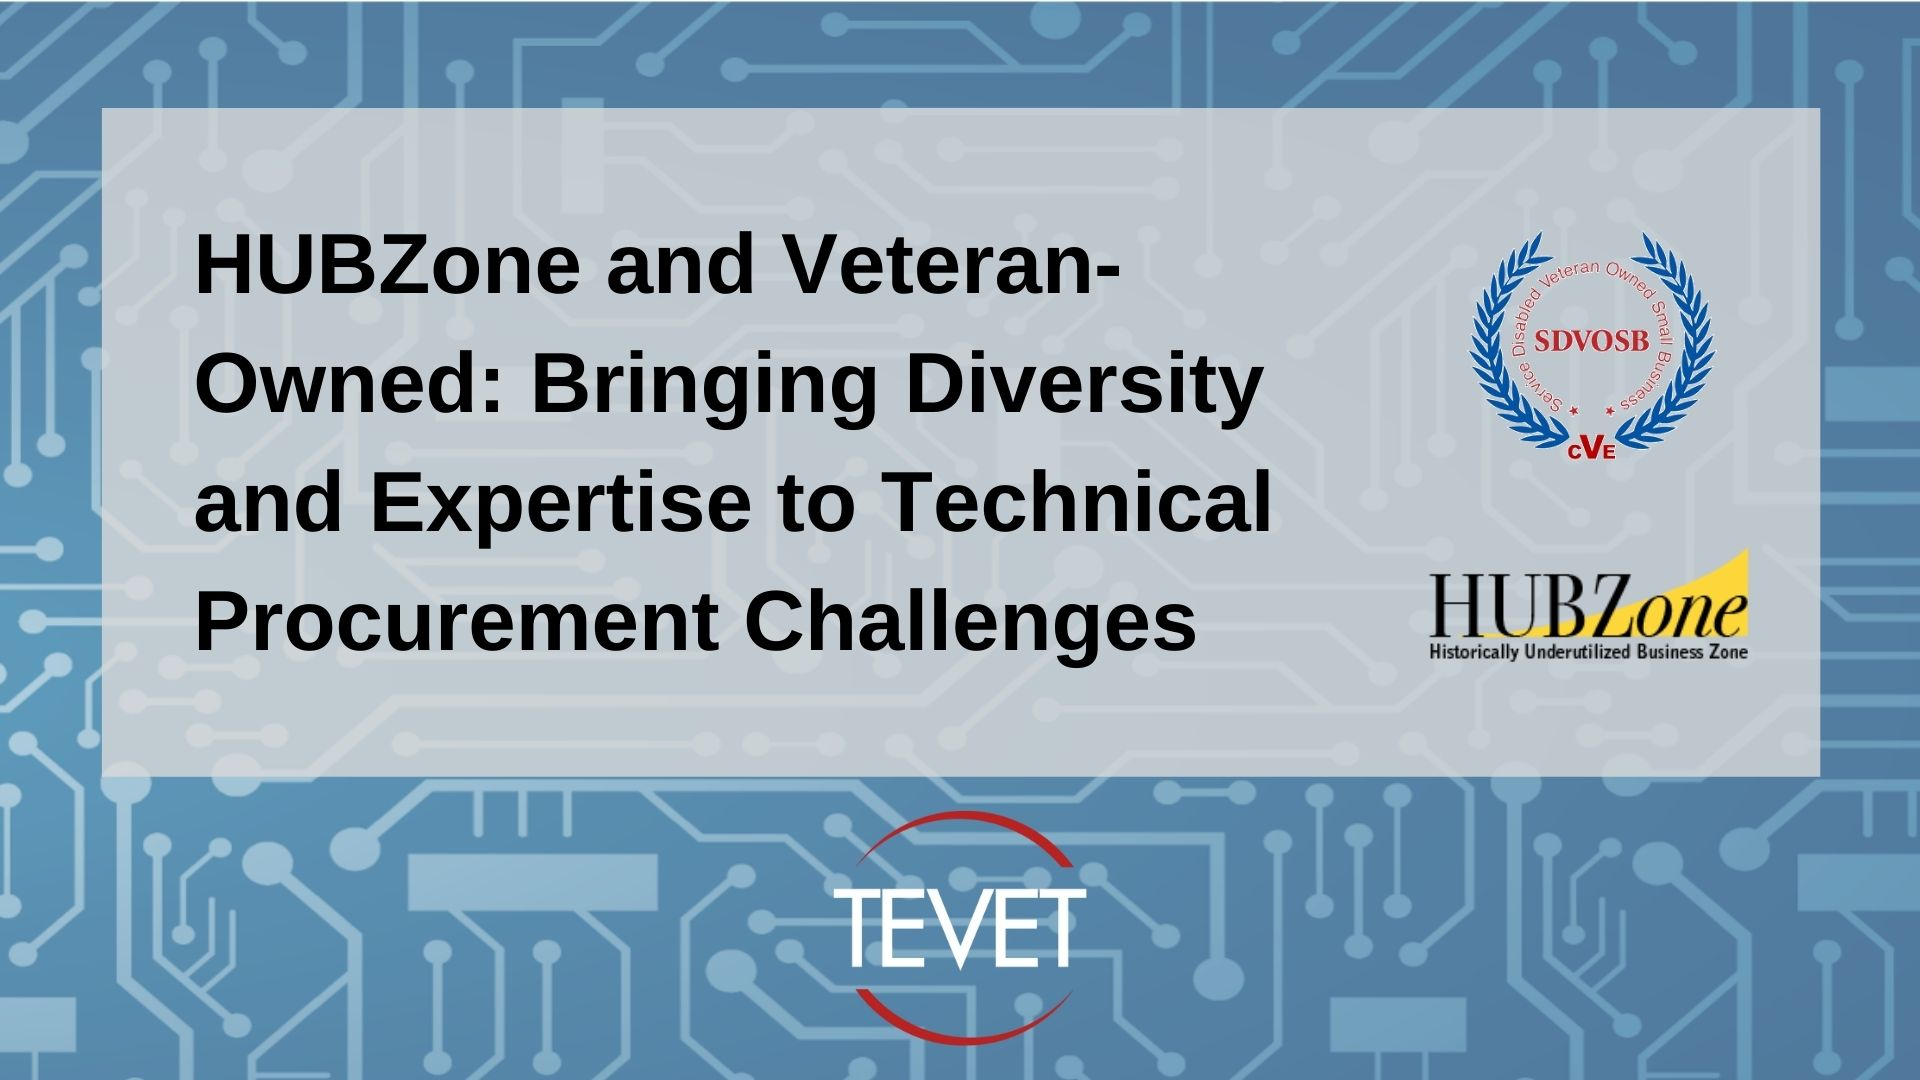 HUBZone and Veteran-Owned Bringing Diversity and Expertise to Technical Procurement Challenges